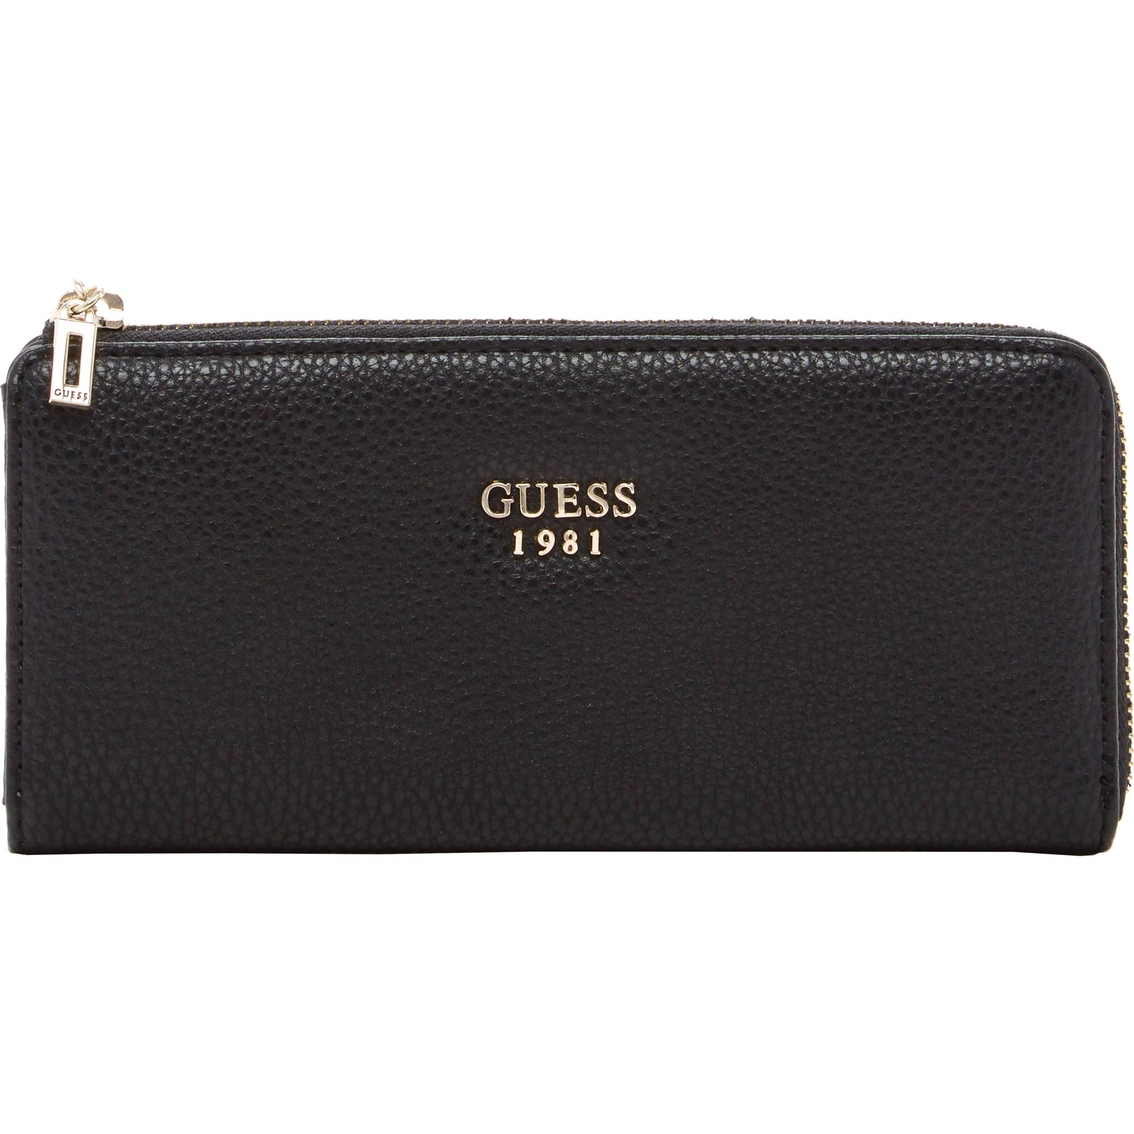 Black Guess Wallets For Women | www.imgkid.com - The Image ...